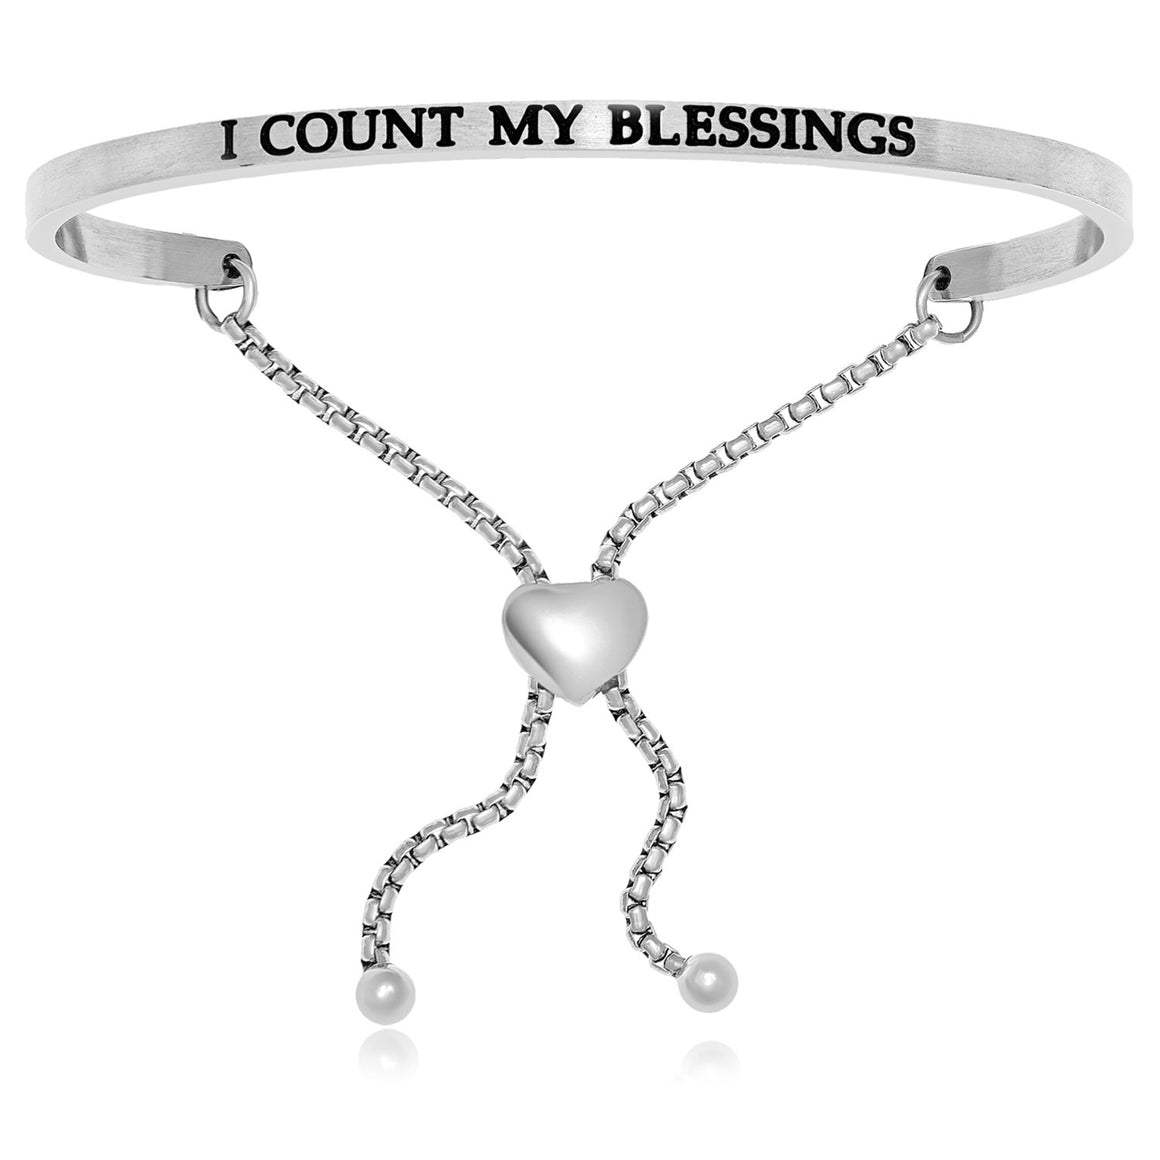 Stainless Steel I Count My Blessings Adjustable Bracelet